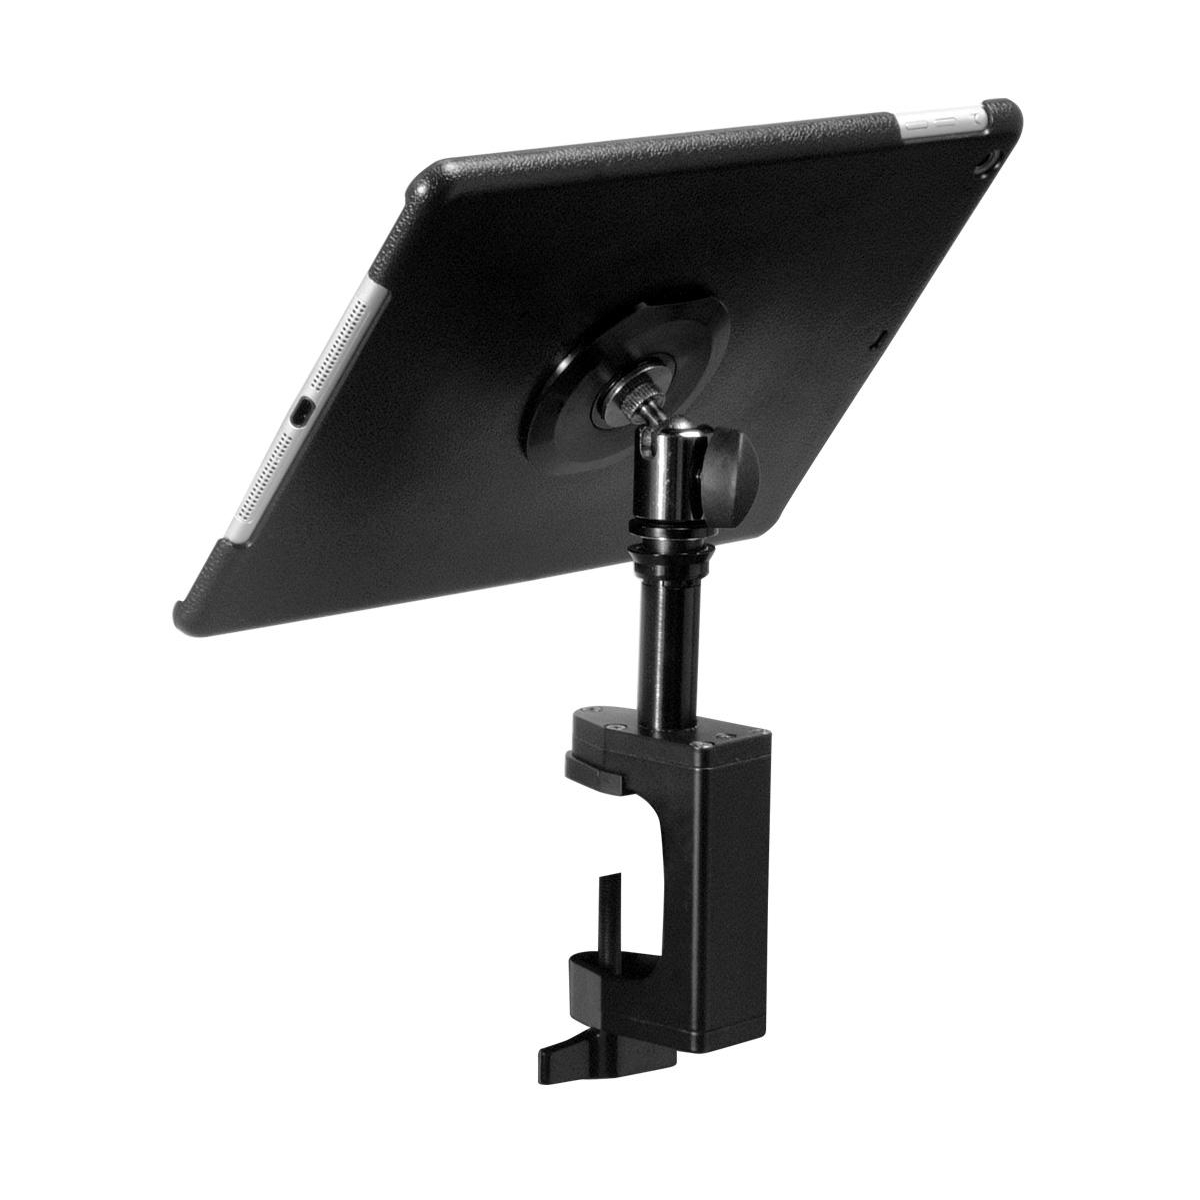 Ipad Stand - U-Mount tablet Mounting System, snap on version - Table top mounting stand